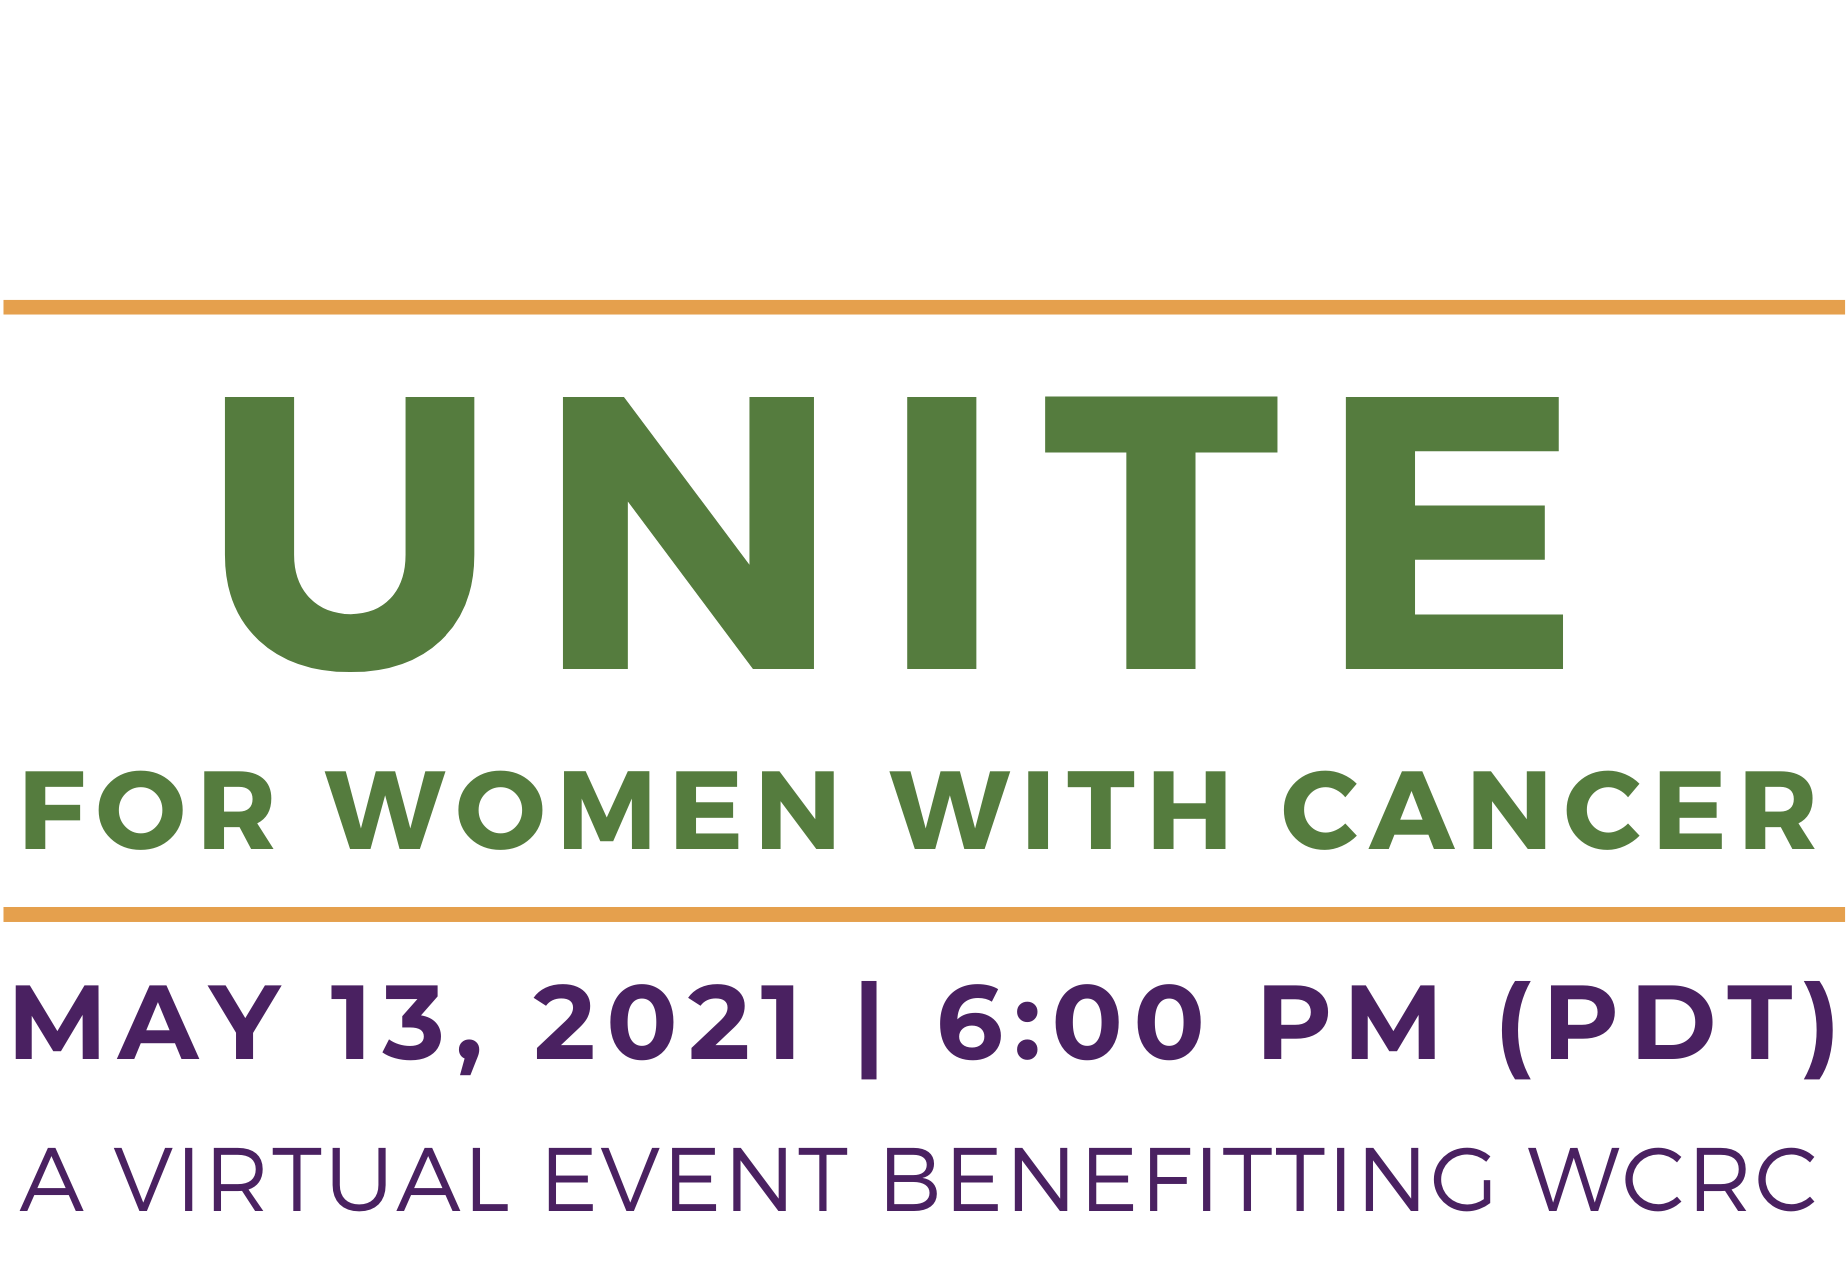 Unite for women with cancer std postcard draft 1 %281%29